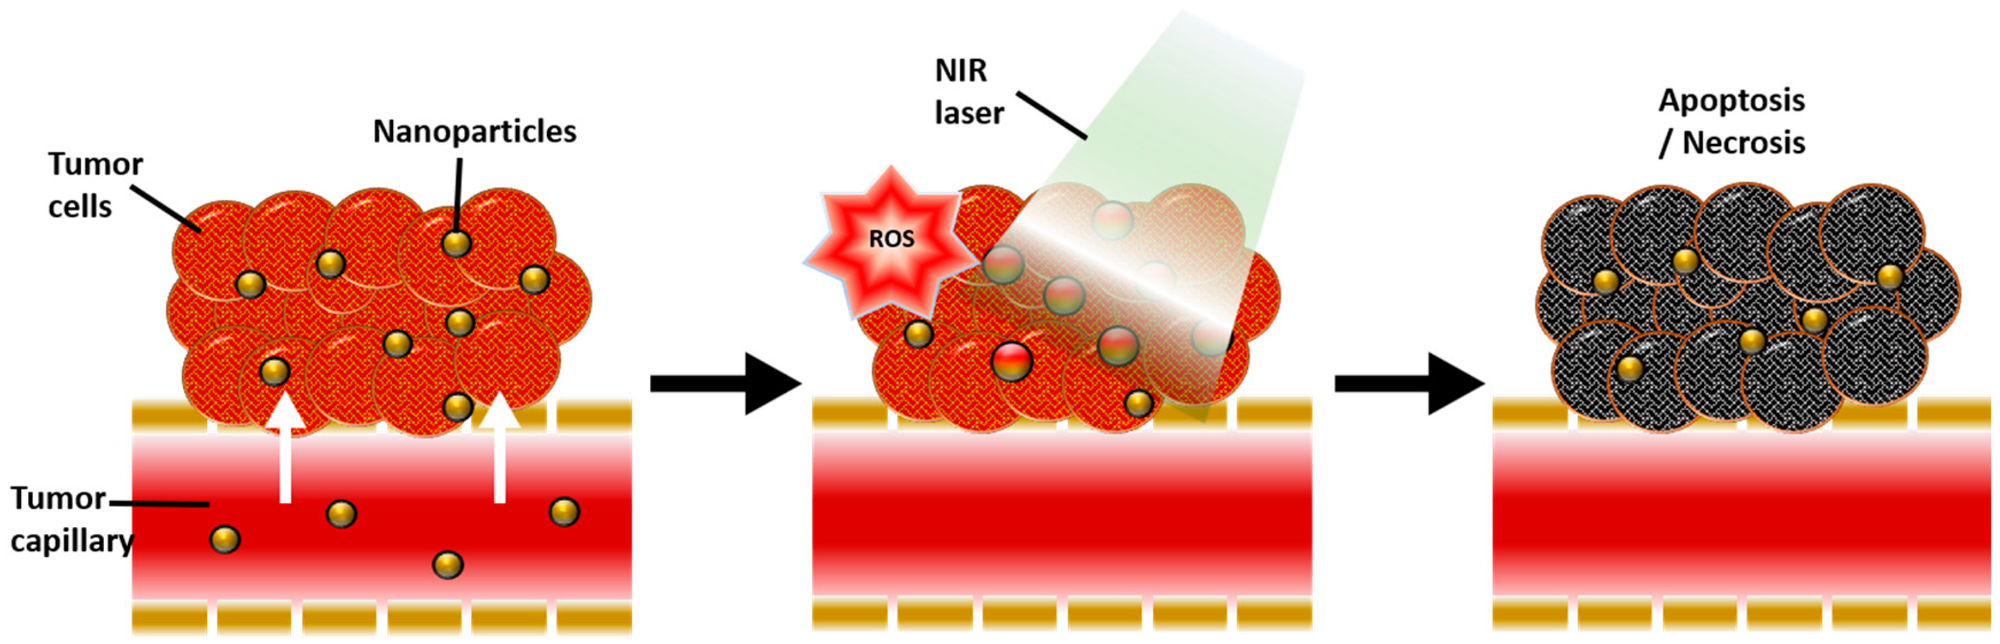 """Near-Infrared-Responsive Cancer Photothermal and Photodynamic Therapy Using Gold Nanoparticles"" published by Hyung Shik Kim and Dong Yun Lee in 2018"